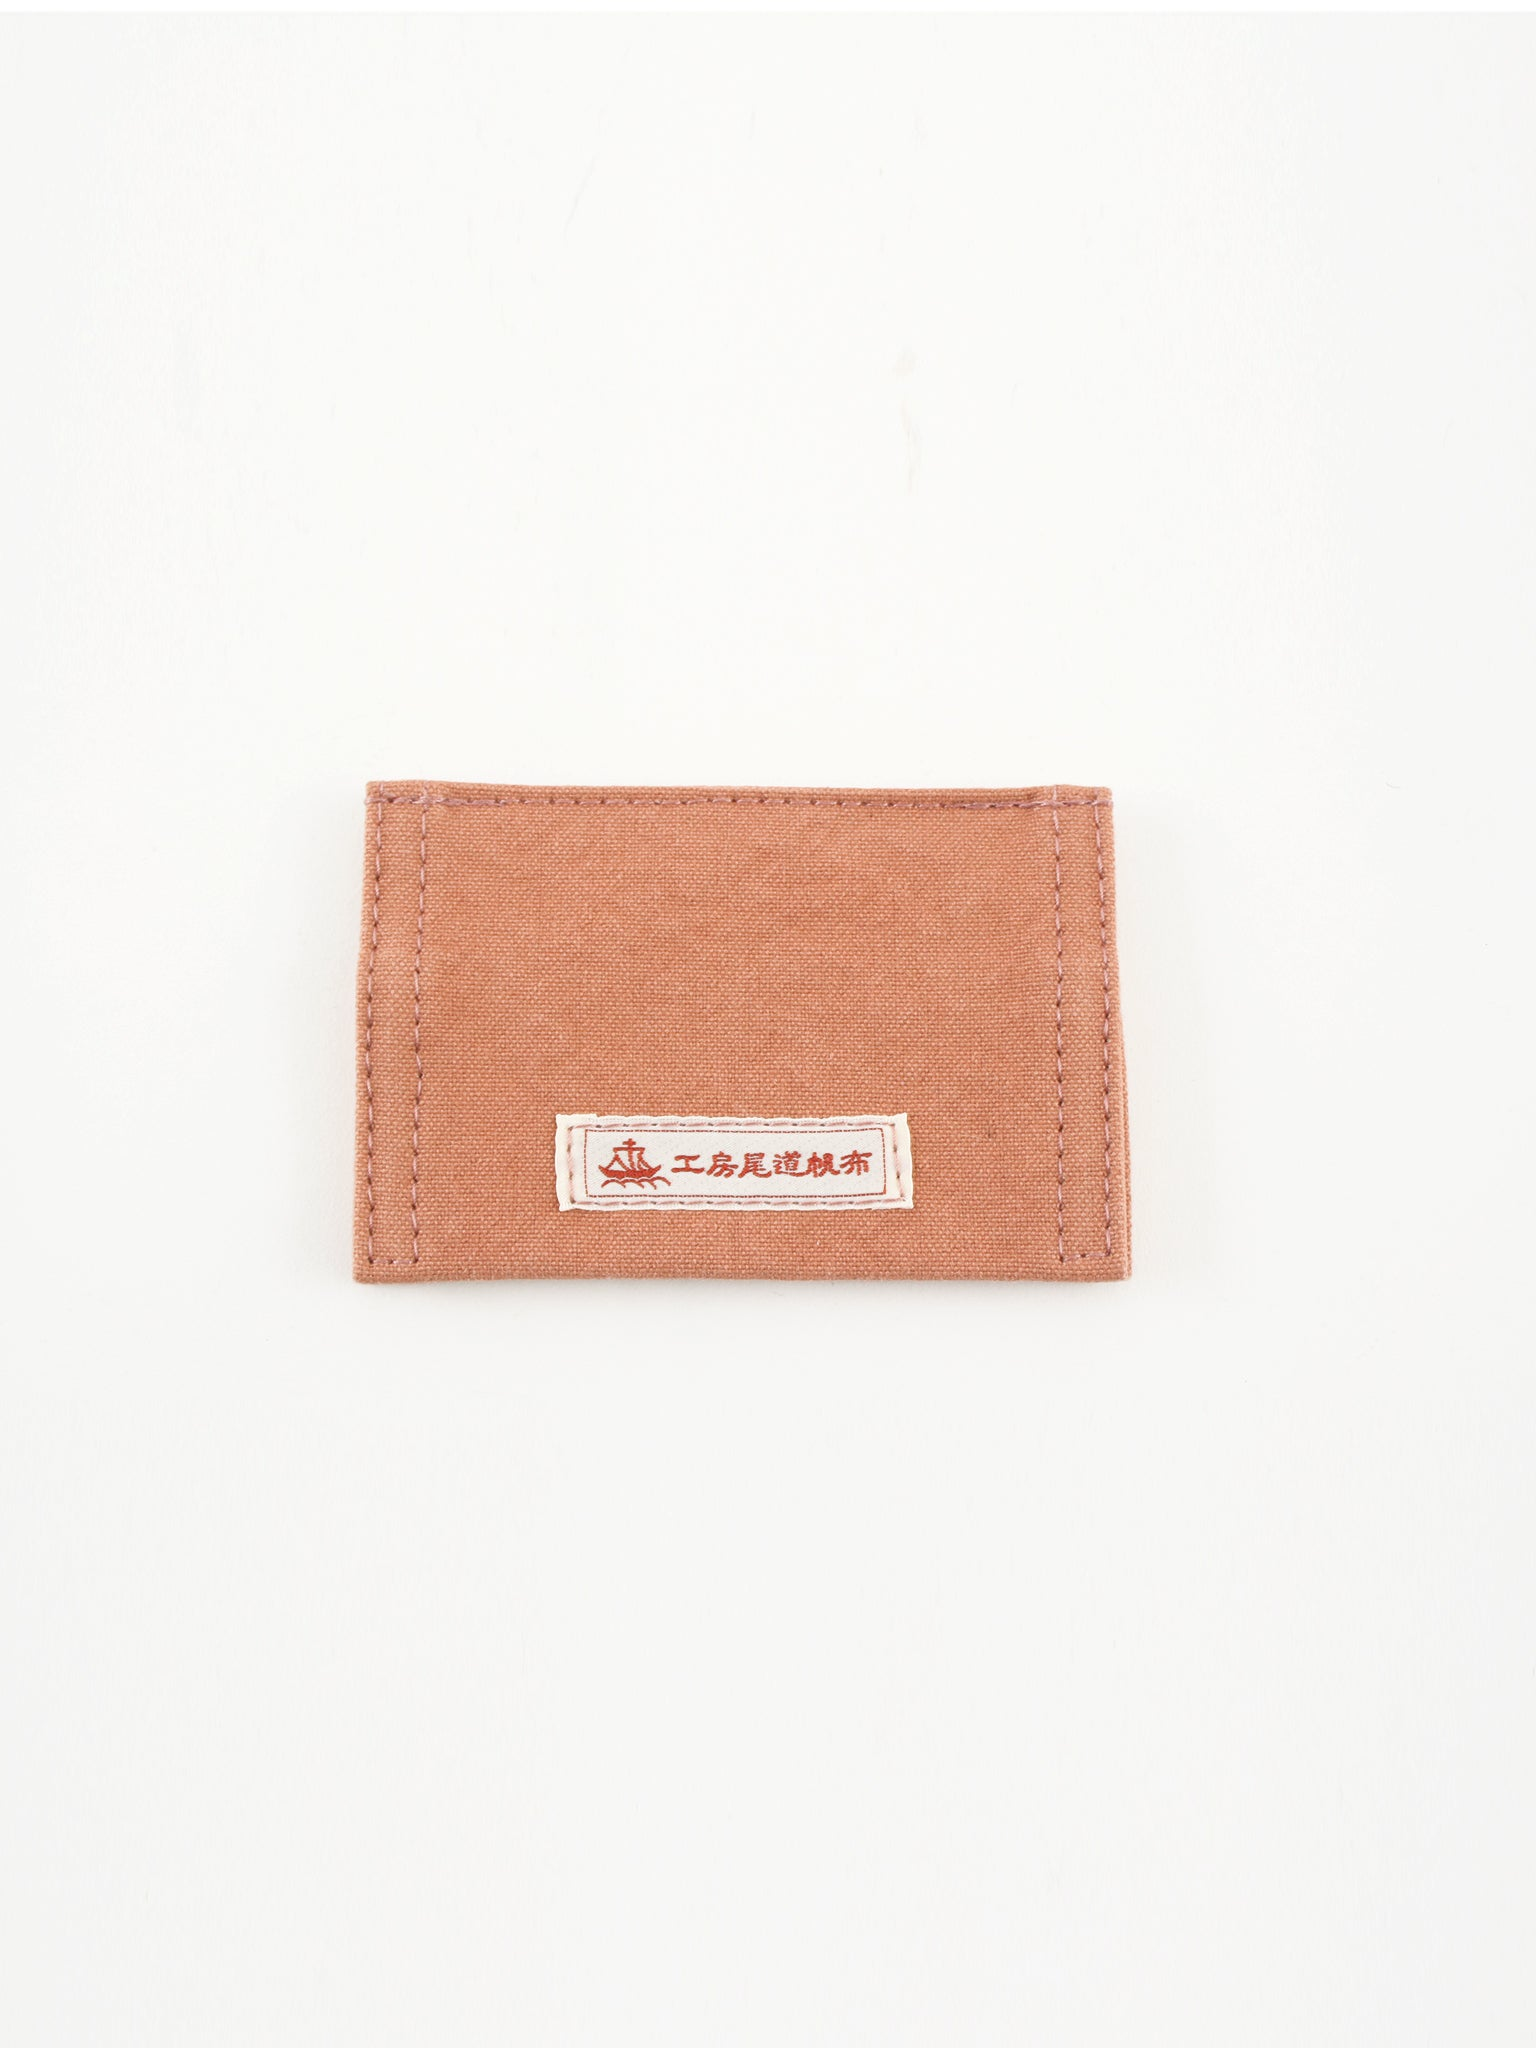 Ohayo Card case, salmon pink